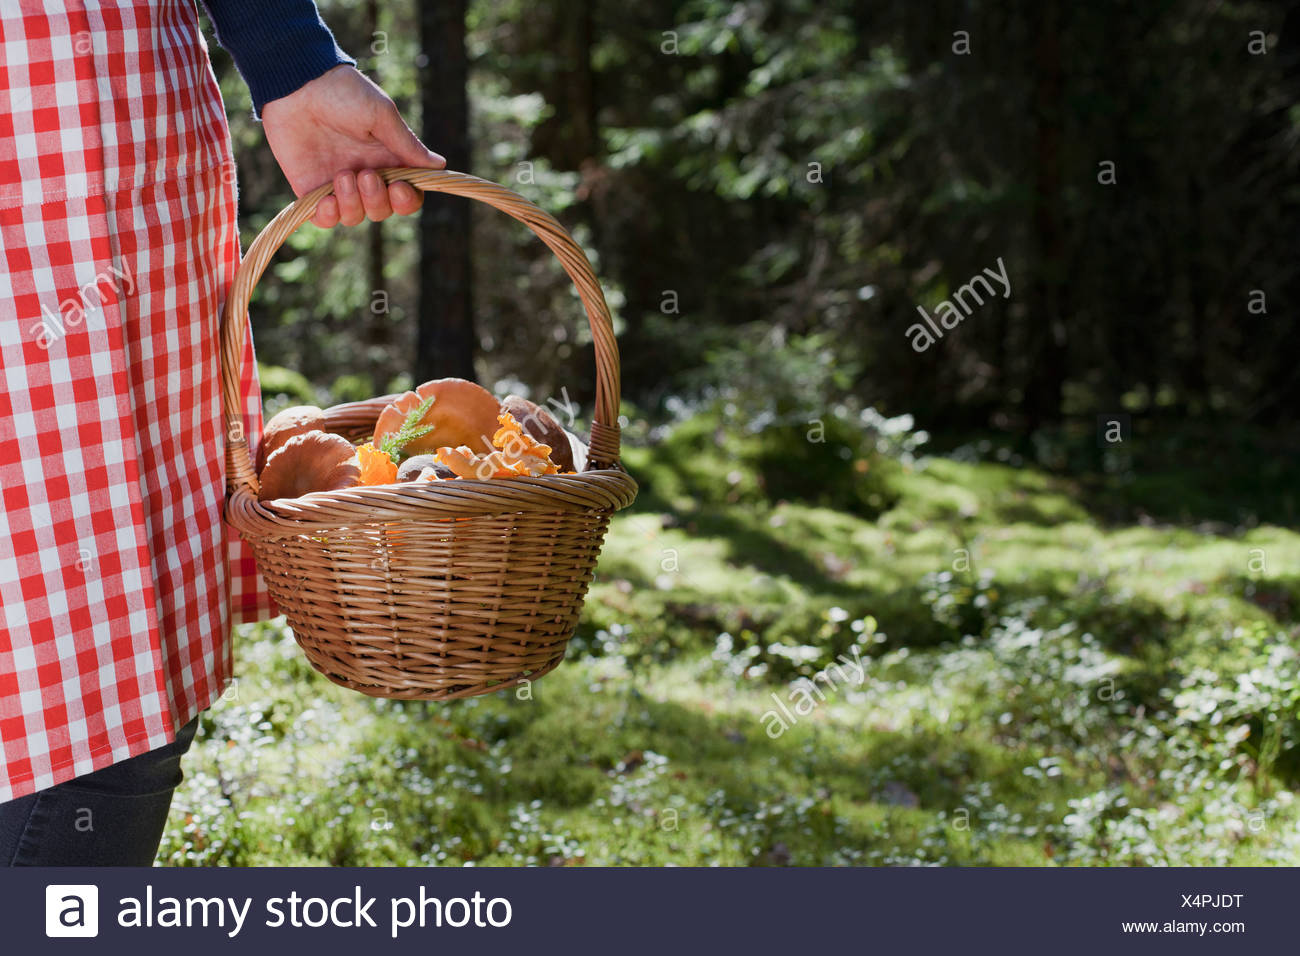 Woman with basket of mushrooms in forest Stock Photo